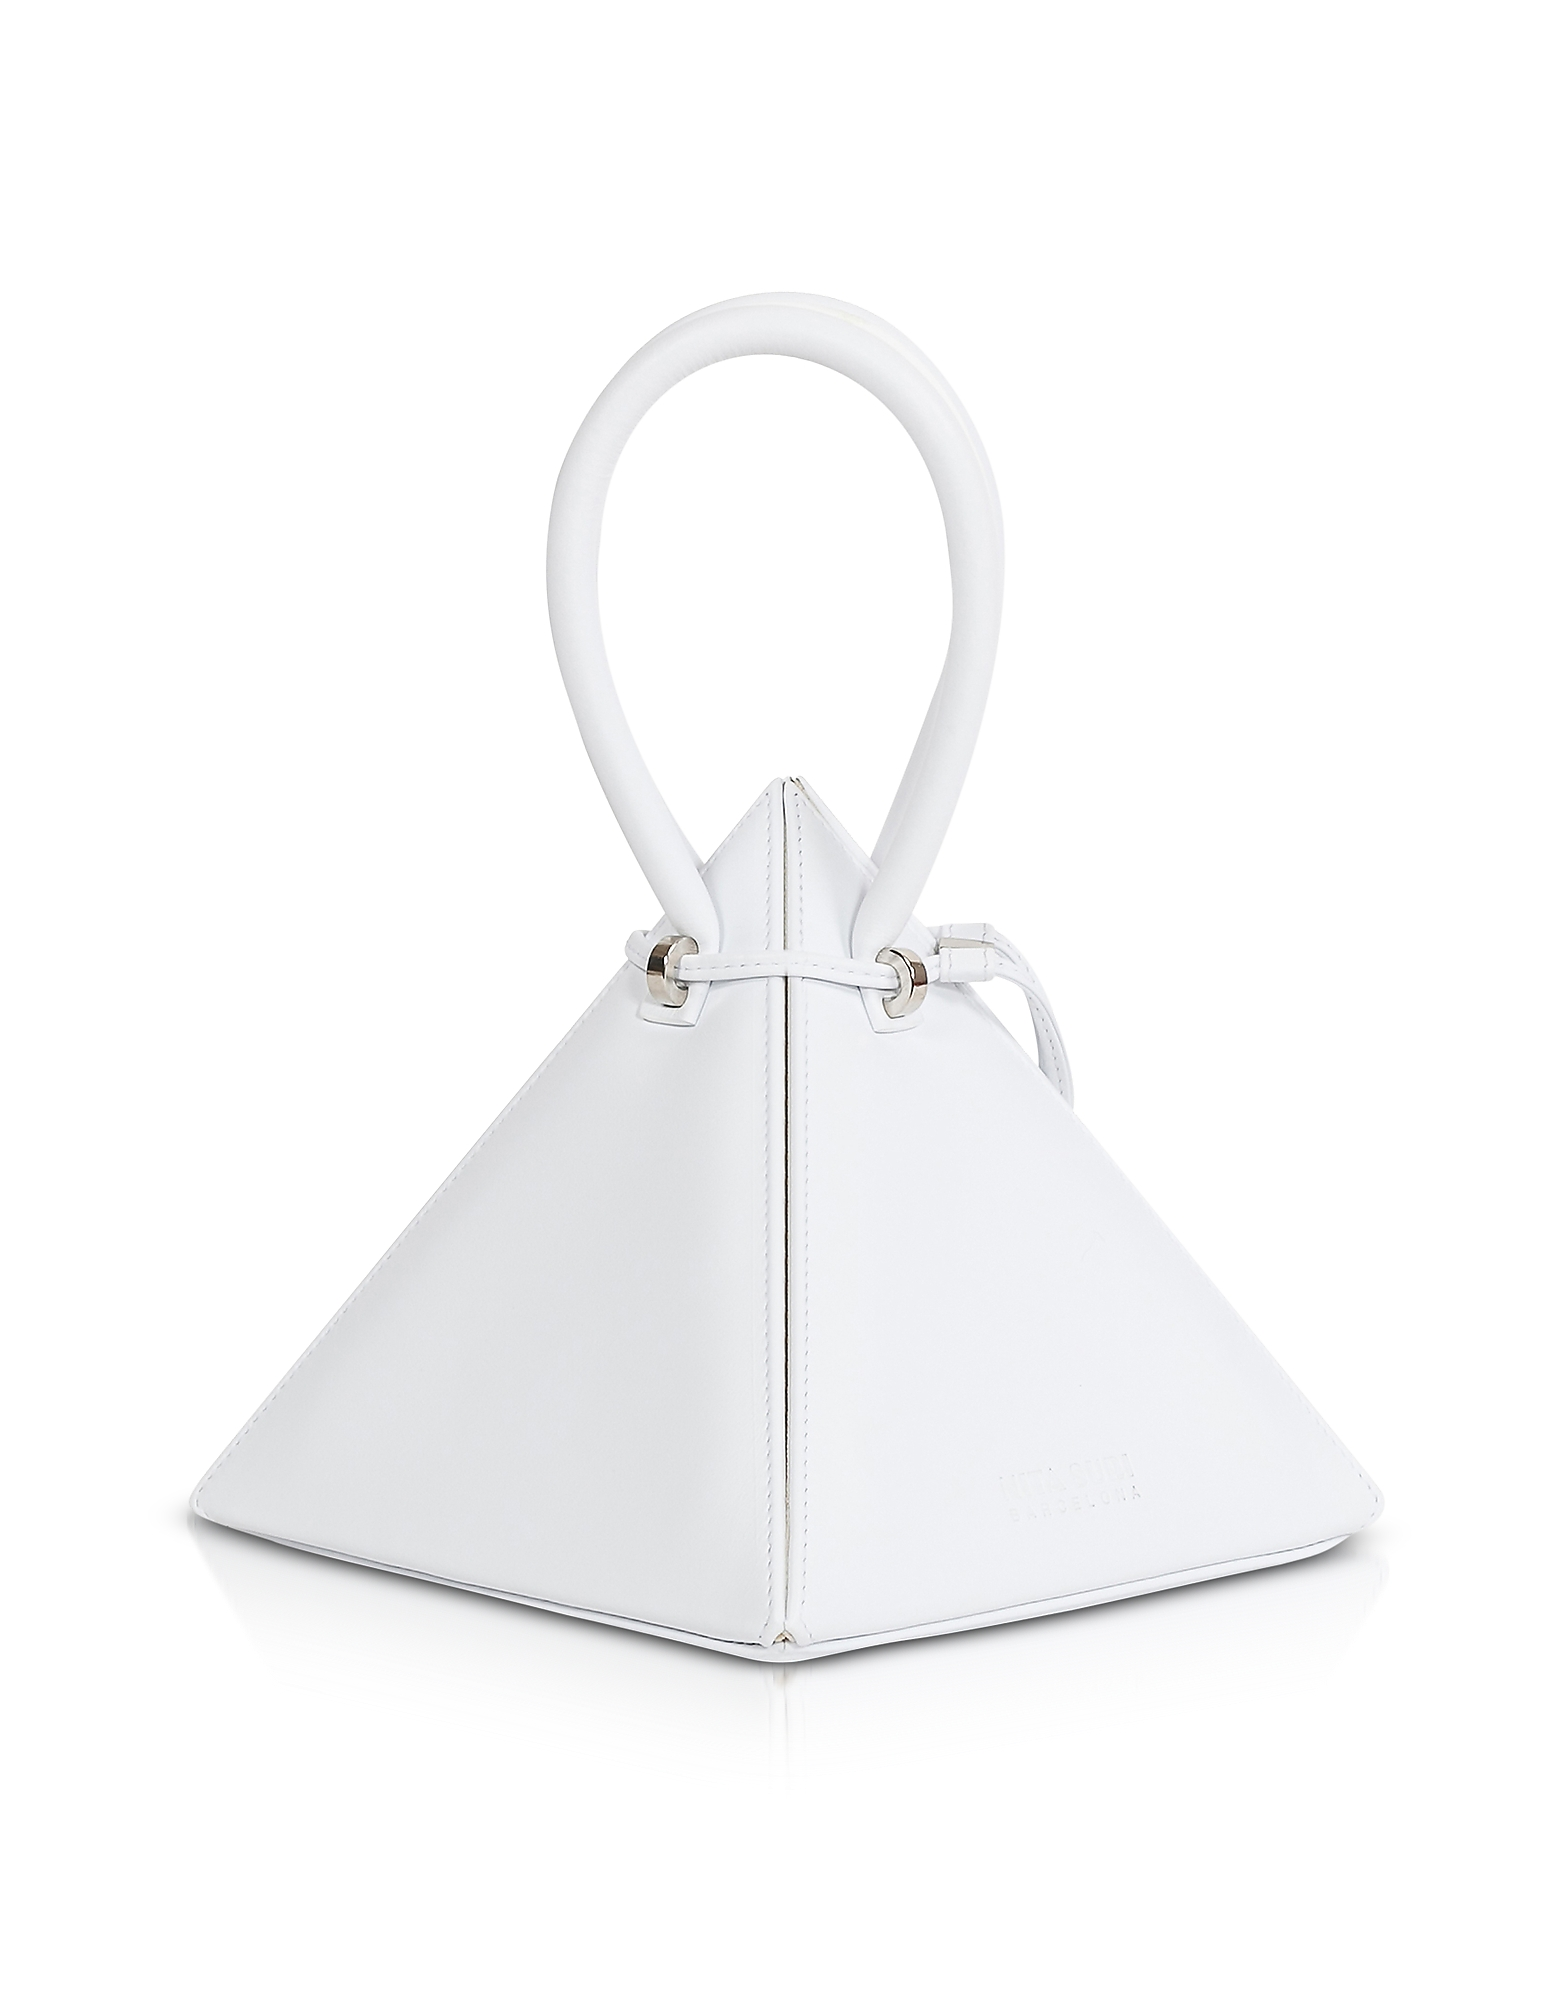 Lia Iconic Handbag